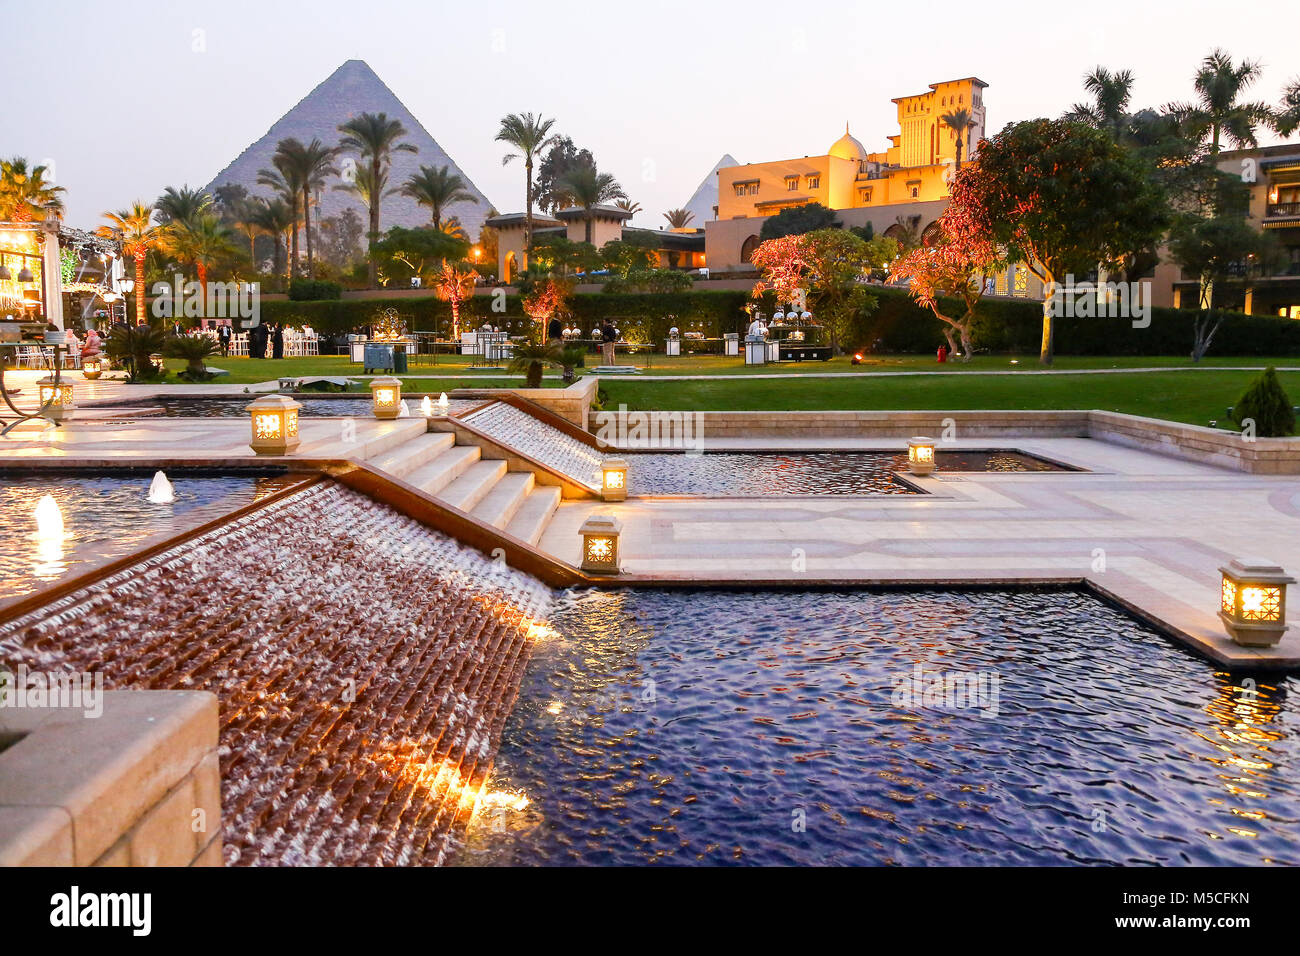 Evening or night time view of the Mena House Hotel, with the Pyramids in the background, Giza, Cairo, Egypt, North - Stock Image